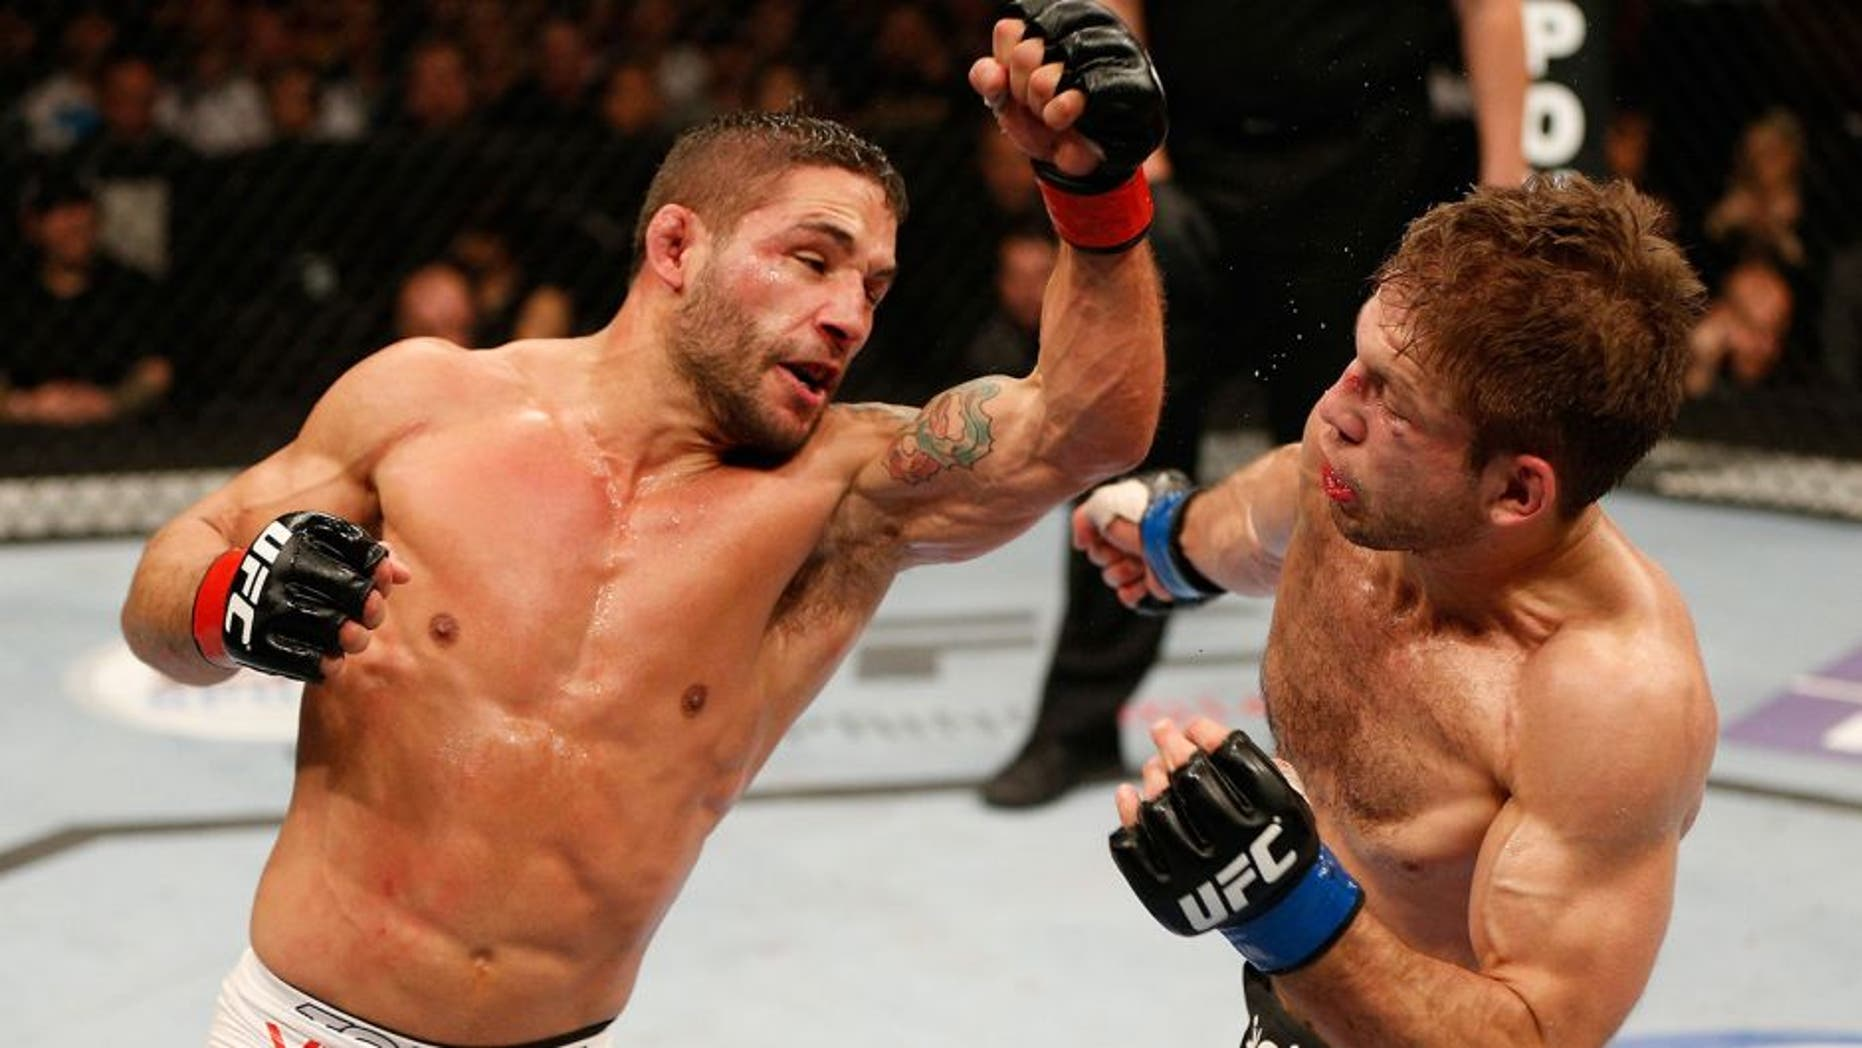 SACRAMENTO, CA - DECEMBER 14: (L-R) Chad Mendes punches Nik Lentz in their featherweight bout during the UFC on FOX event at Sleep Train Arena on December 14, 2013 in Sacramento, California. (Photo by Josh Hedges/Zuffa LLC/Zuffa LLC via Getty Images)